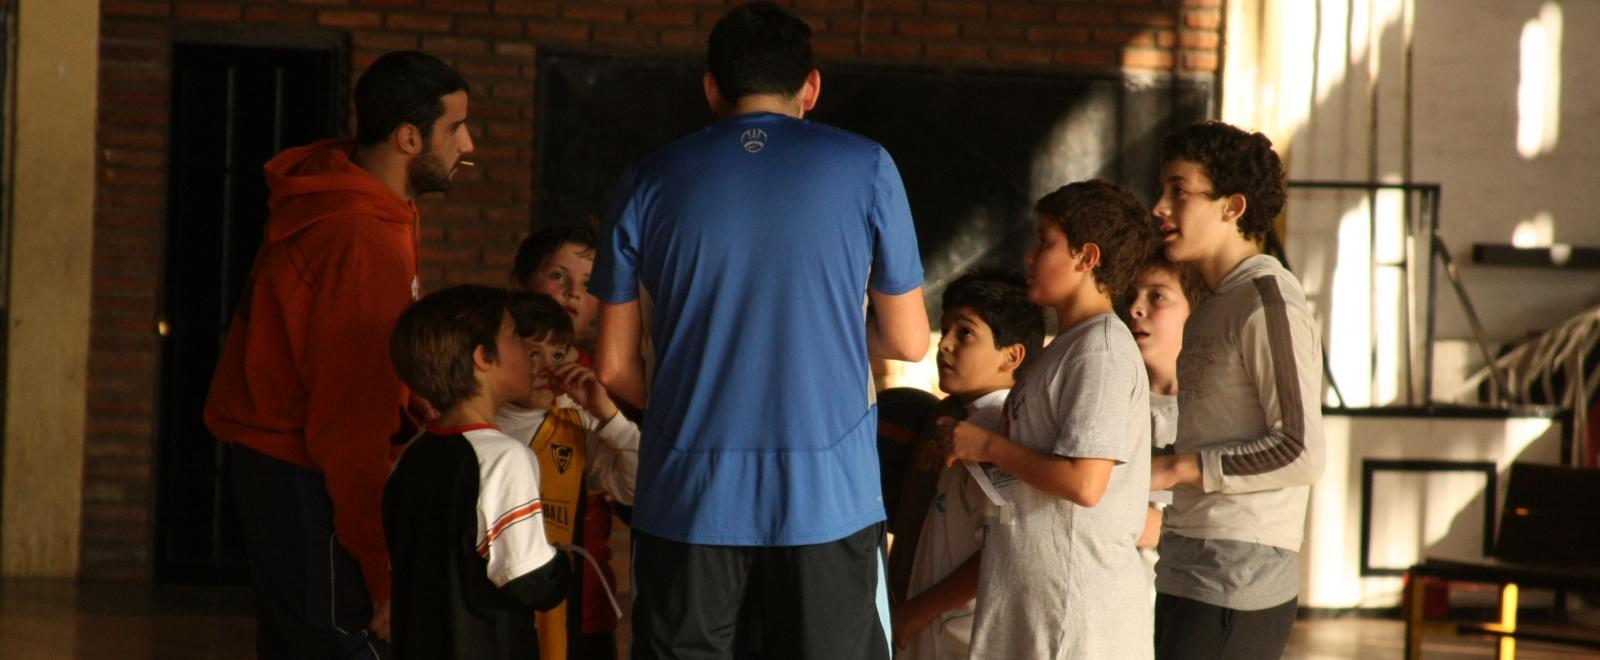 A sports player meets with his team as part of his volunteer sports coaching in Argentina